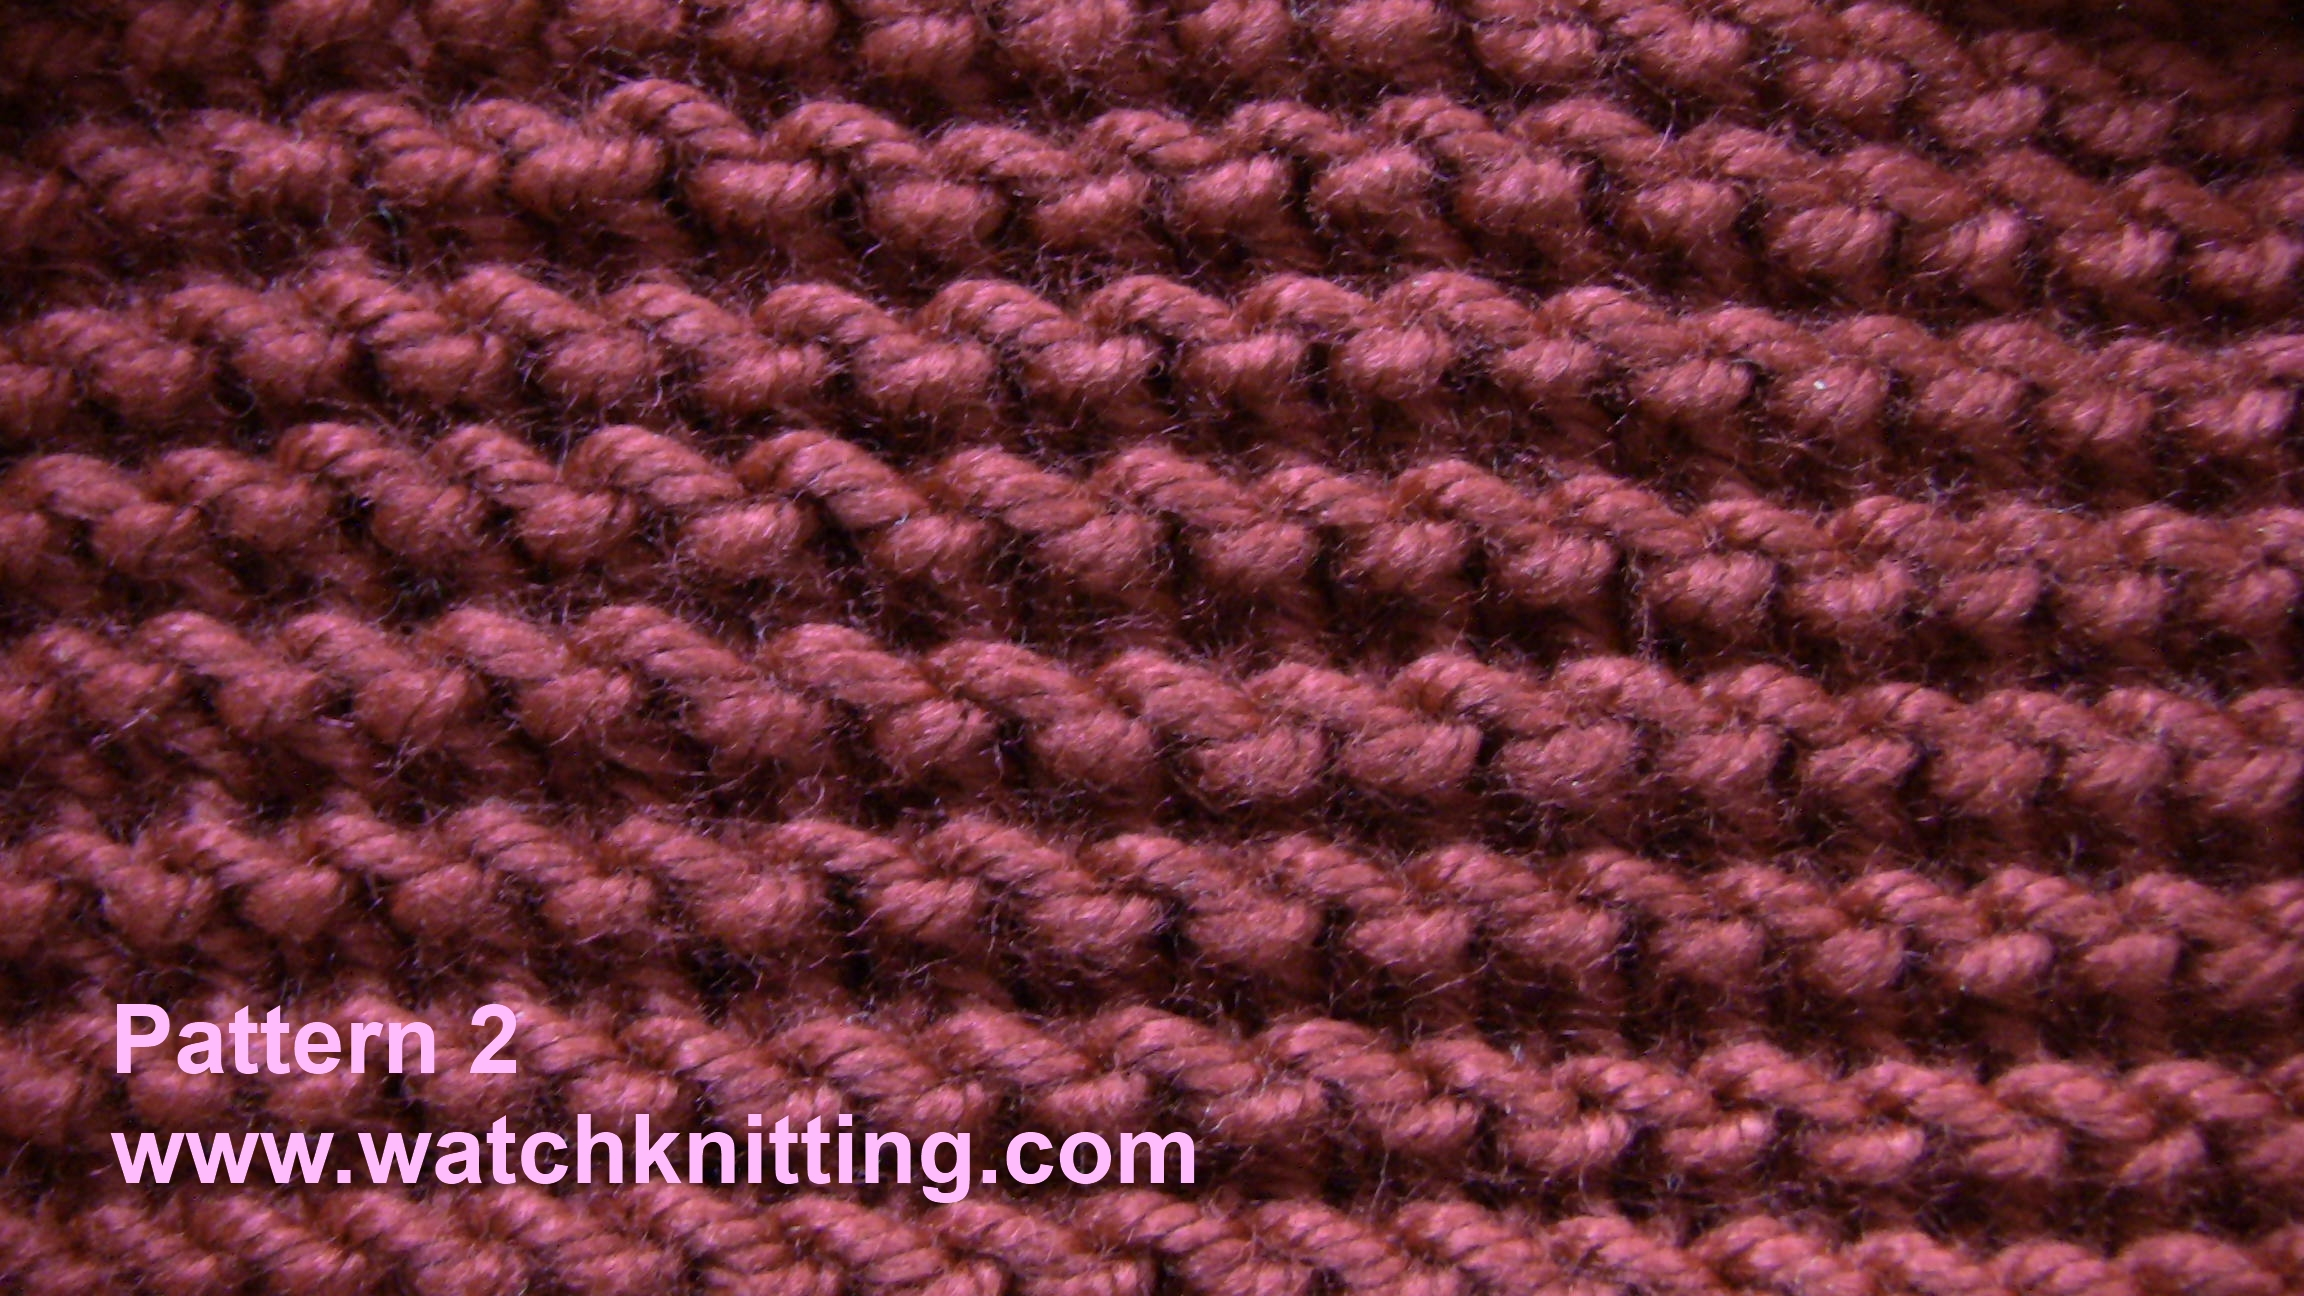 Simple Knitting Patterns : Pattern 2-Simple Knitting Patterns-www.watchknitting.com